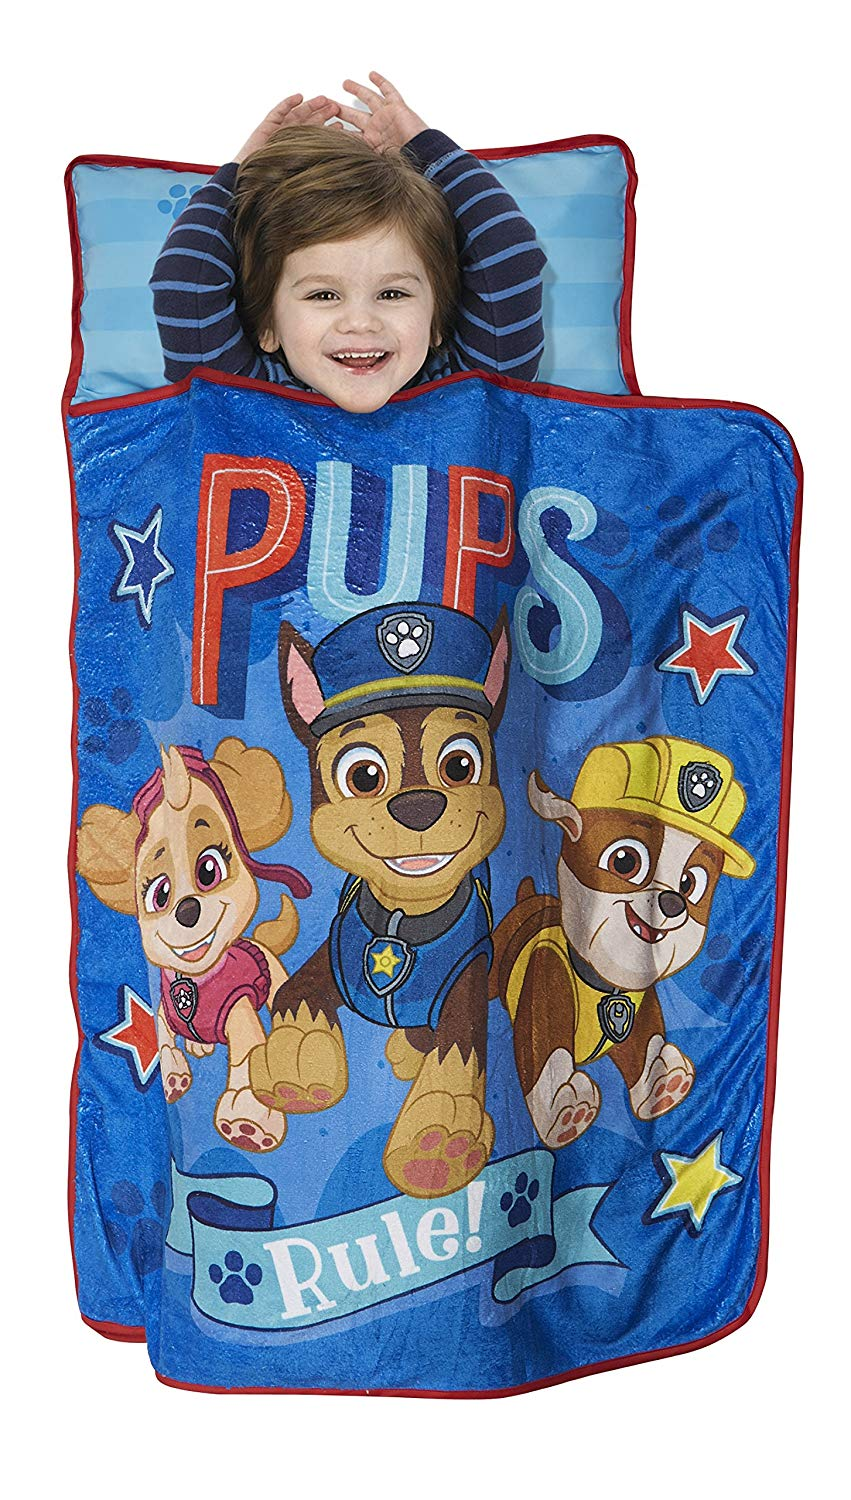 PAW Patrol Pups Rule Kids Nap Mat - Includes Pillow & Fleece Blanket, Blue